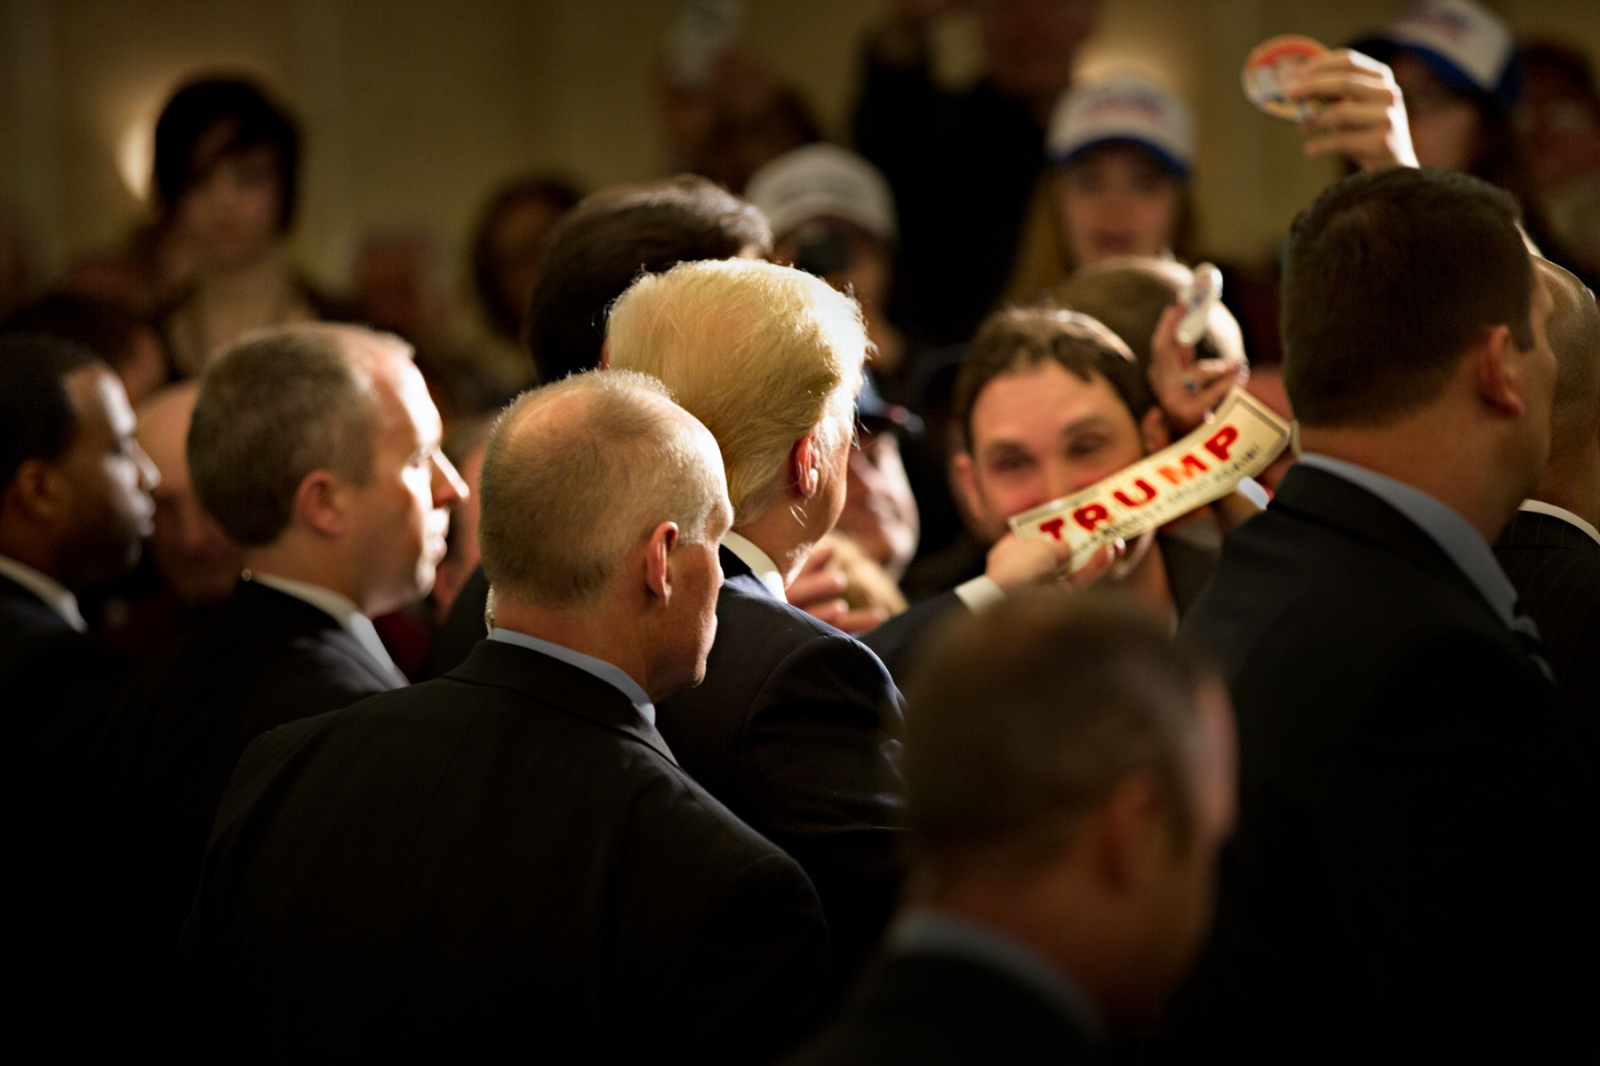 March 30, 2016 - Appleton, Wisconsin - Surrounded by members of the secret service Donald Trump signs autographs and meets with his supporters after a rally in Appleton, Wisconsin.